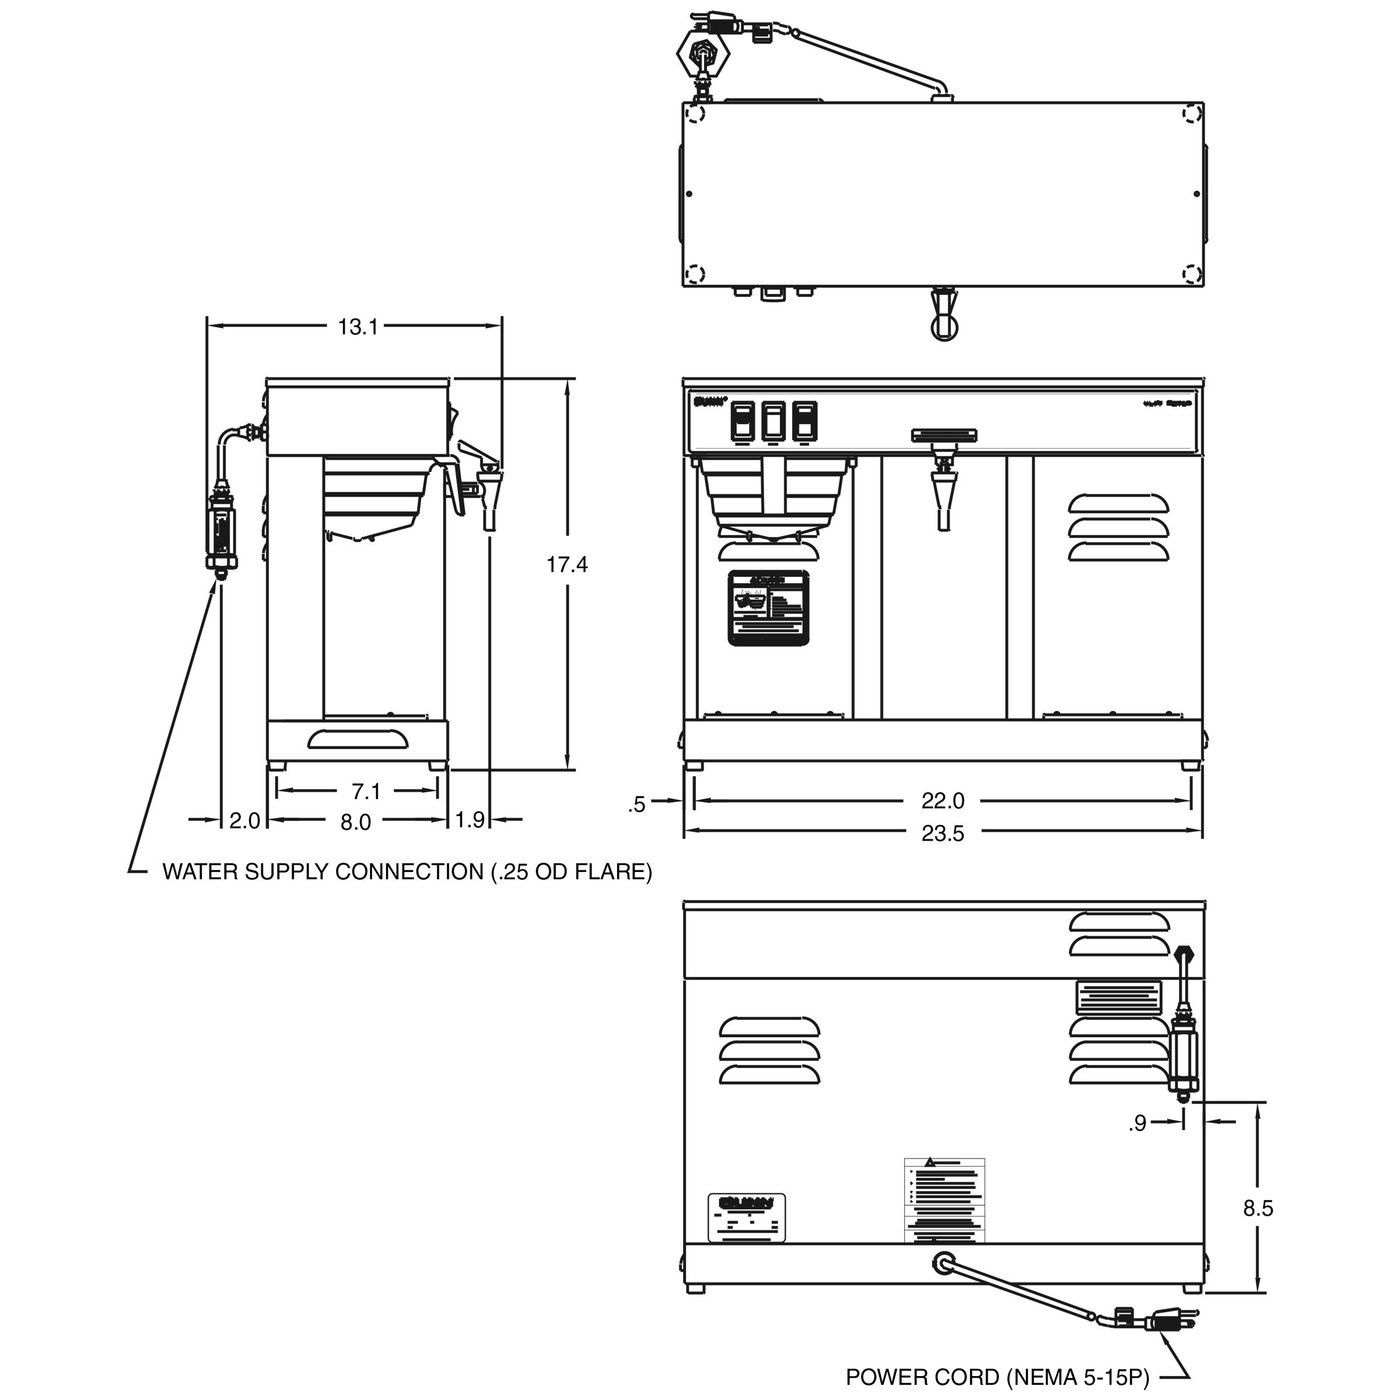 Bunn Coffee Maker Parts Diagram Bunn Vlpf Automatic 12 Cup Coffee Brewer 2 Warmers with Faucet Of Bunn Coffee Maker Parts Diagram